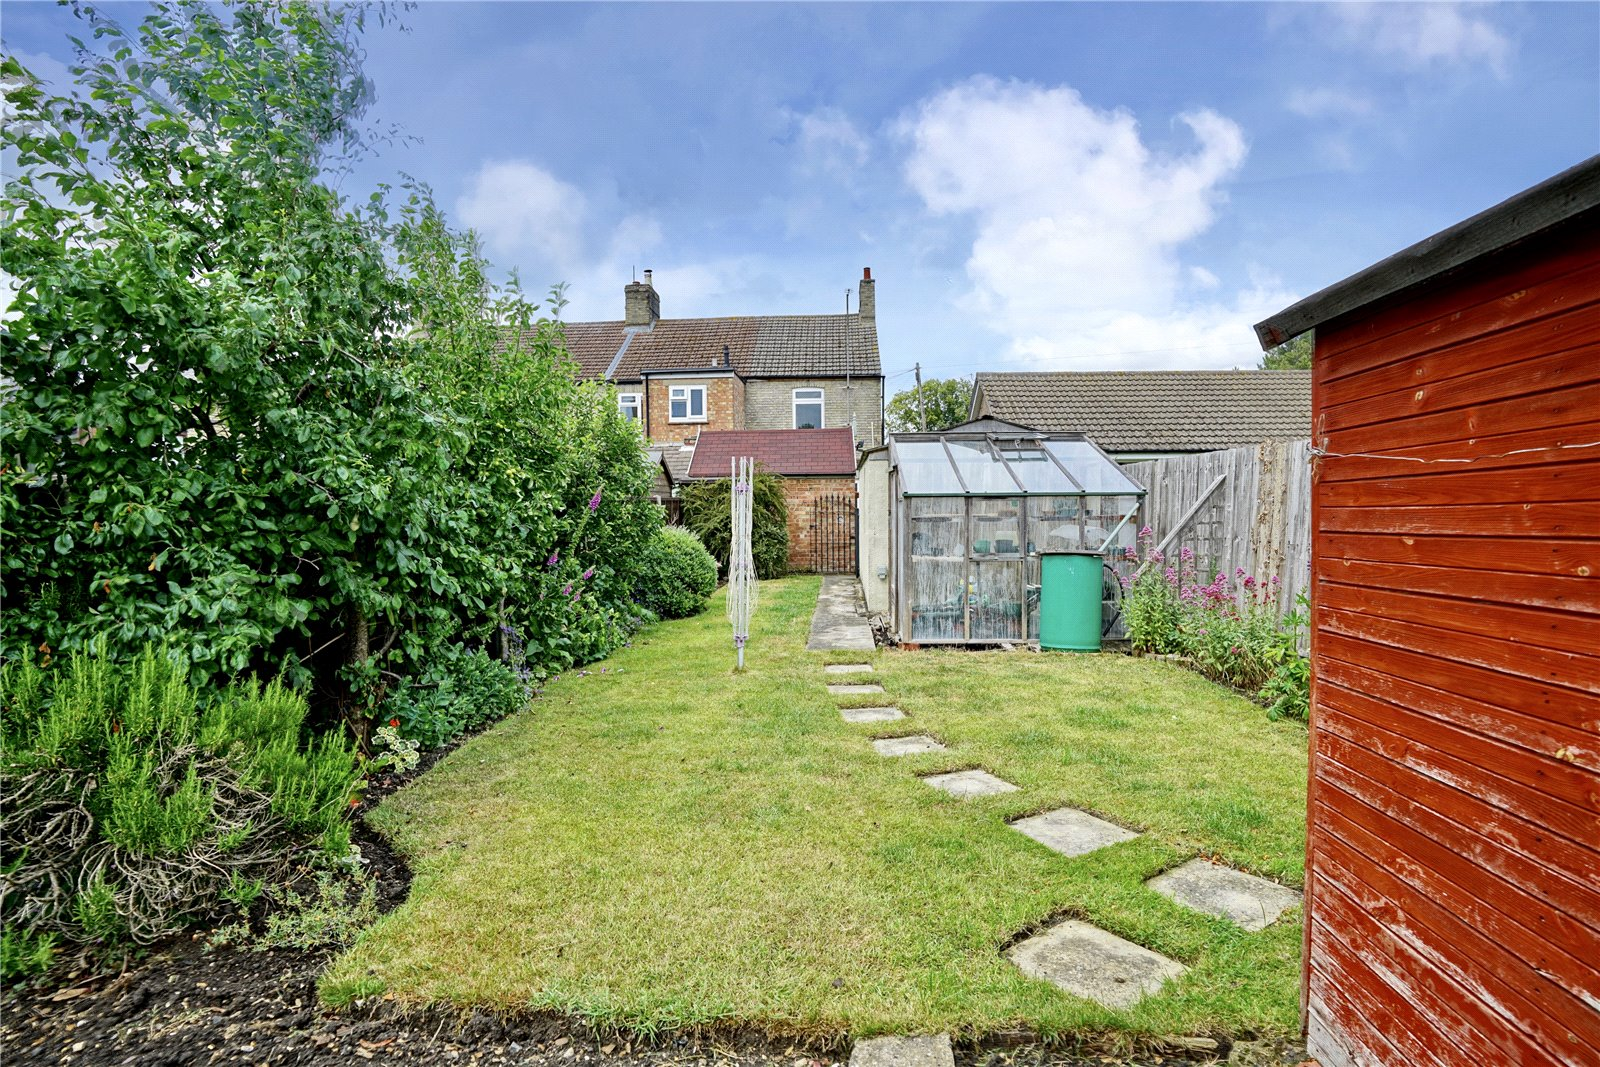 2 bed house for sale in Ackerman Street, Eaton Socon  - Property Image 2